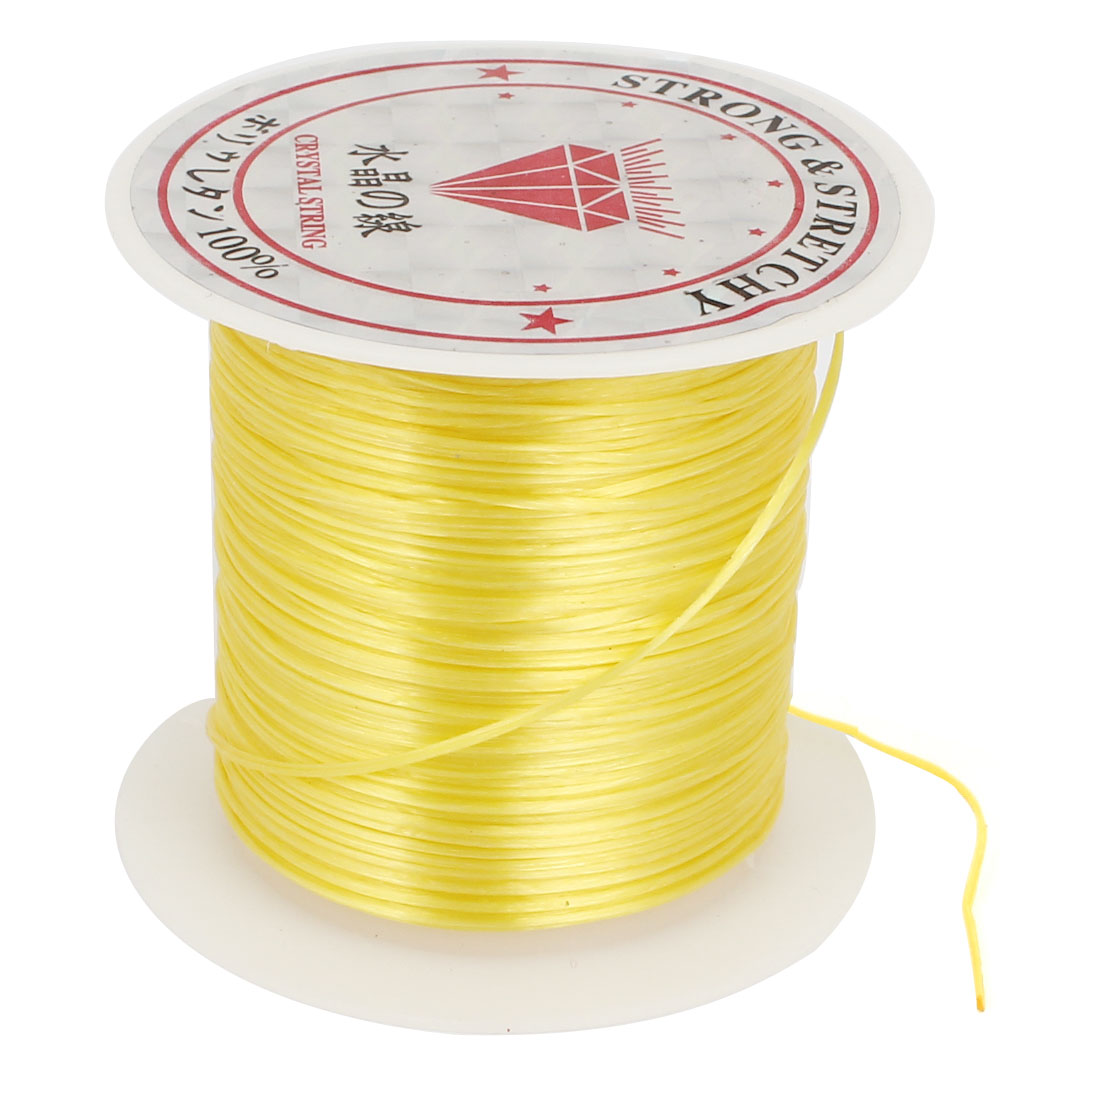 Yellow Elastic Stretch Beading String Thread Cord Wire 1mm for Jewelry Making